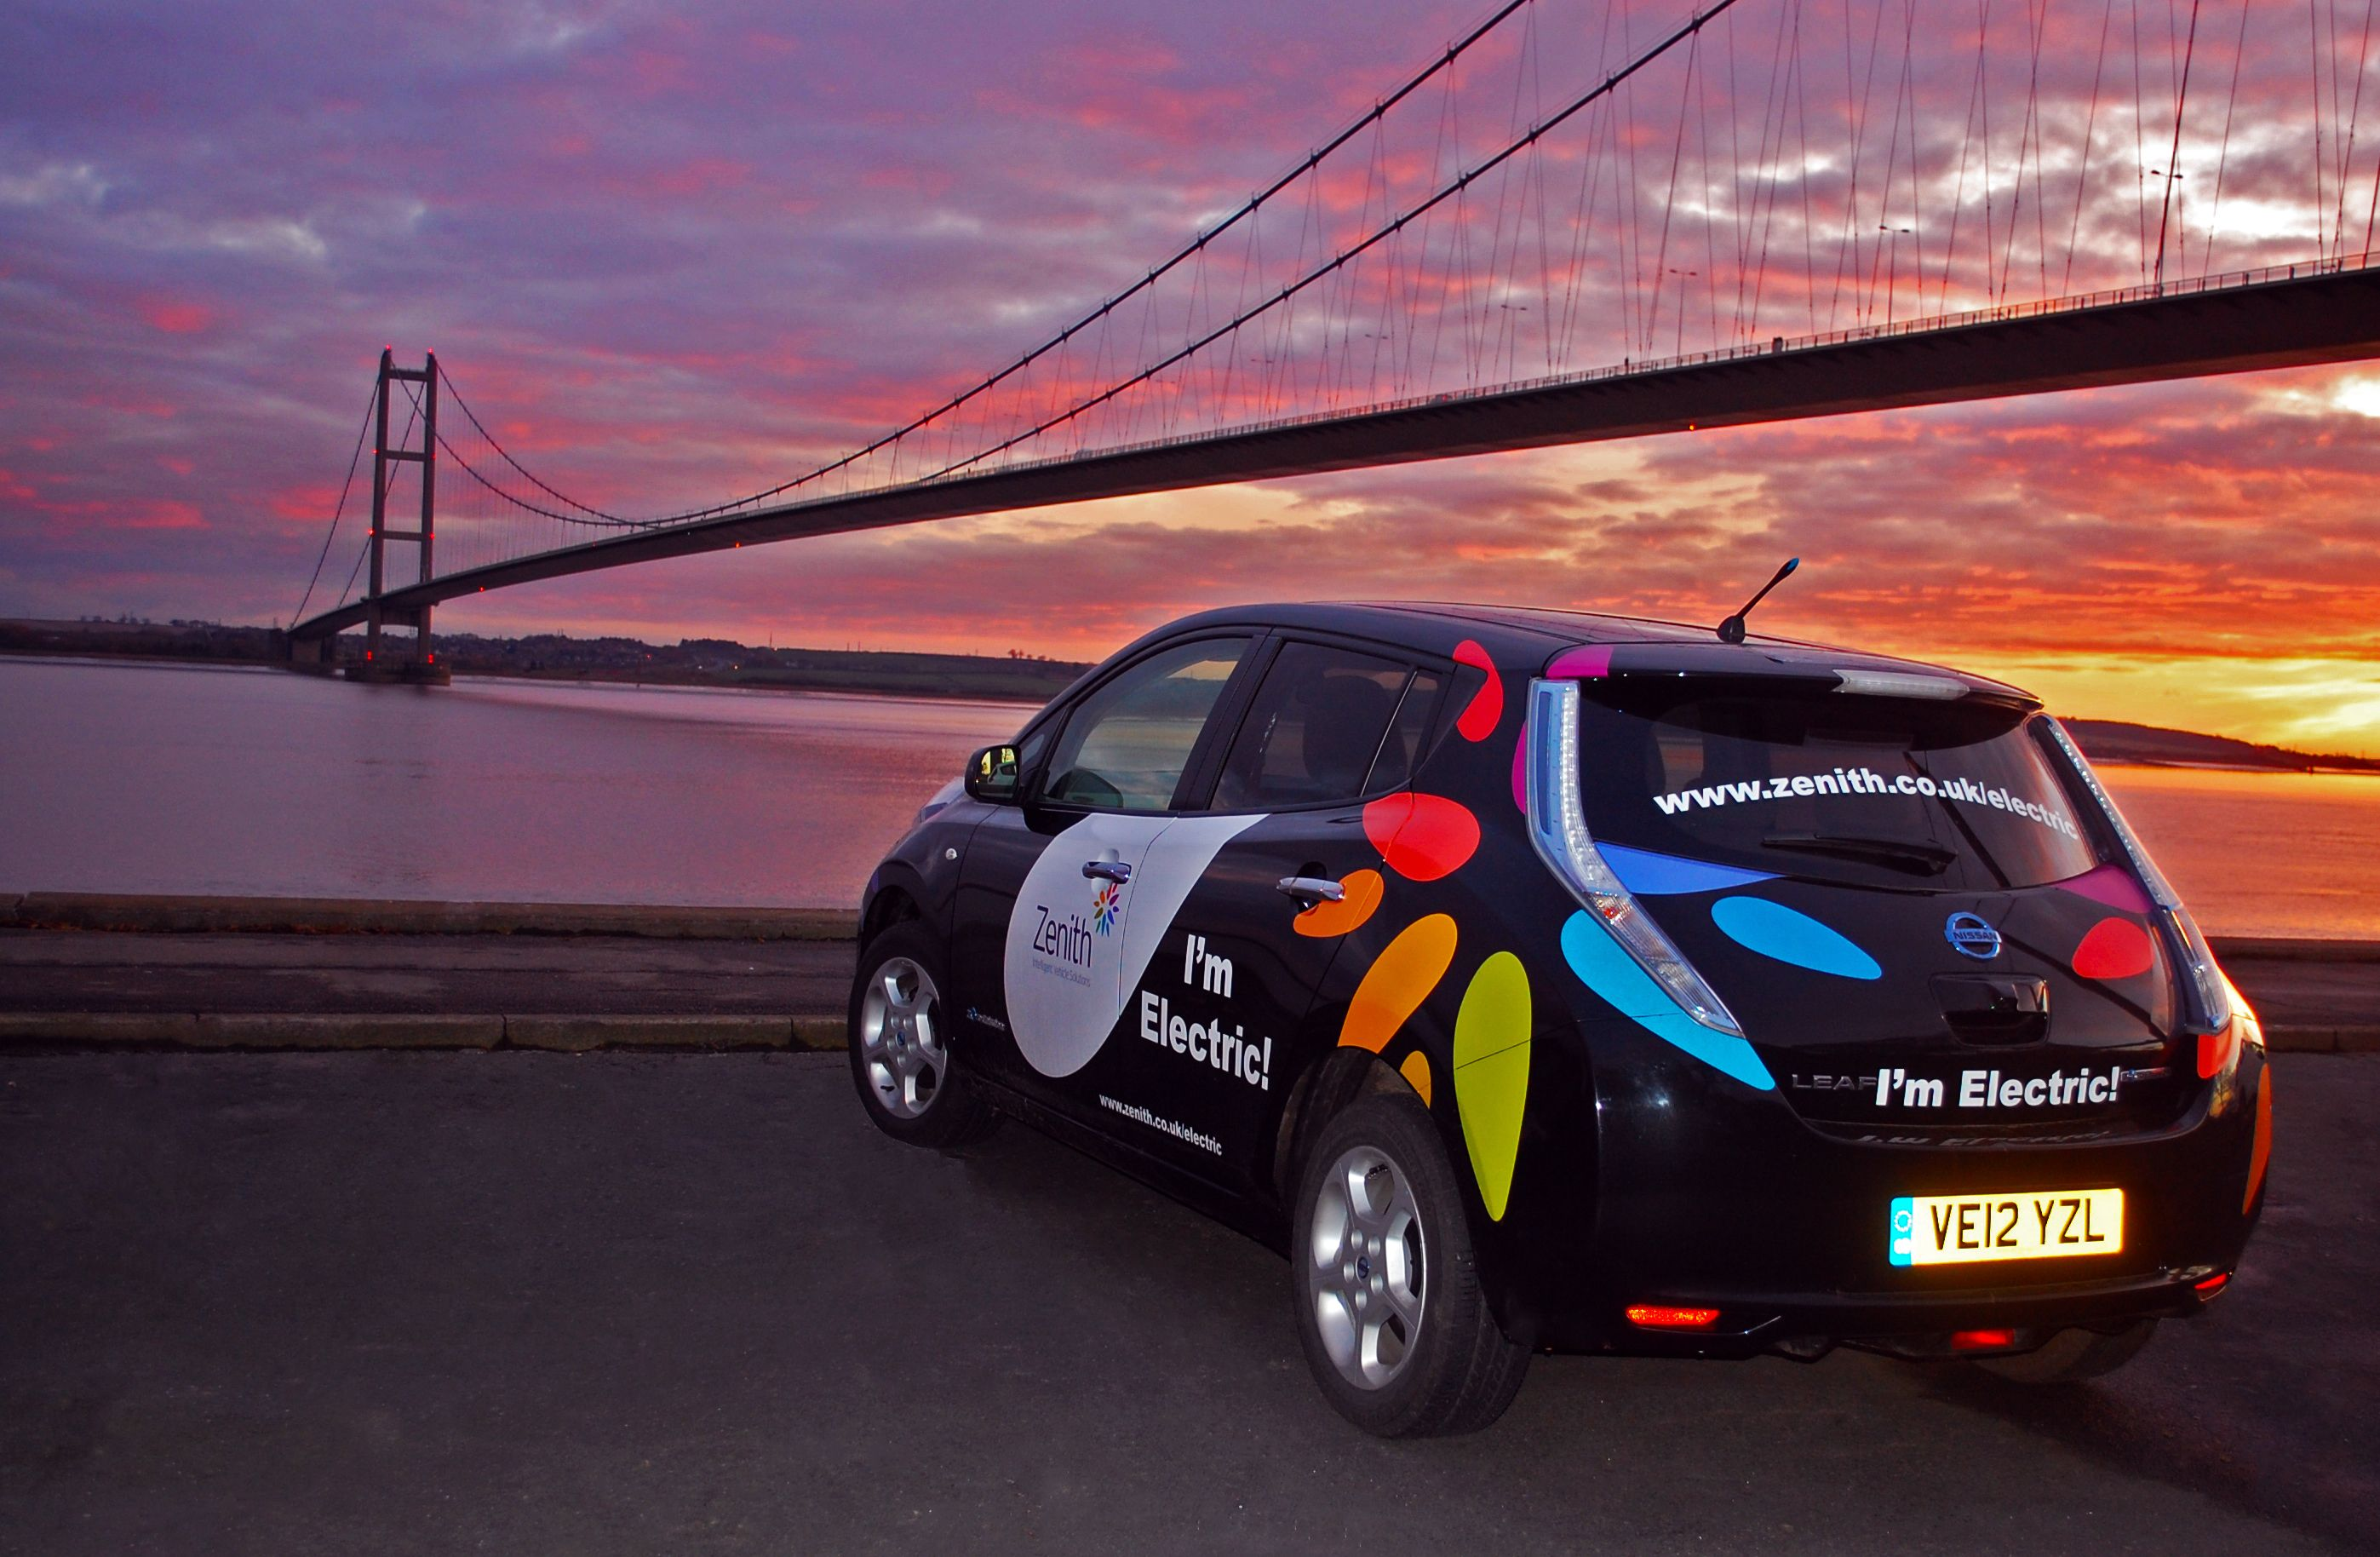 Zenith S Nissan Leaf At Humber Bridge Nissan Leaf Electric Cars